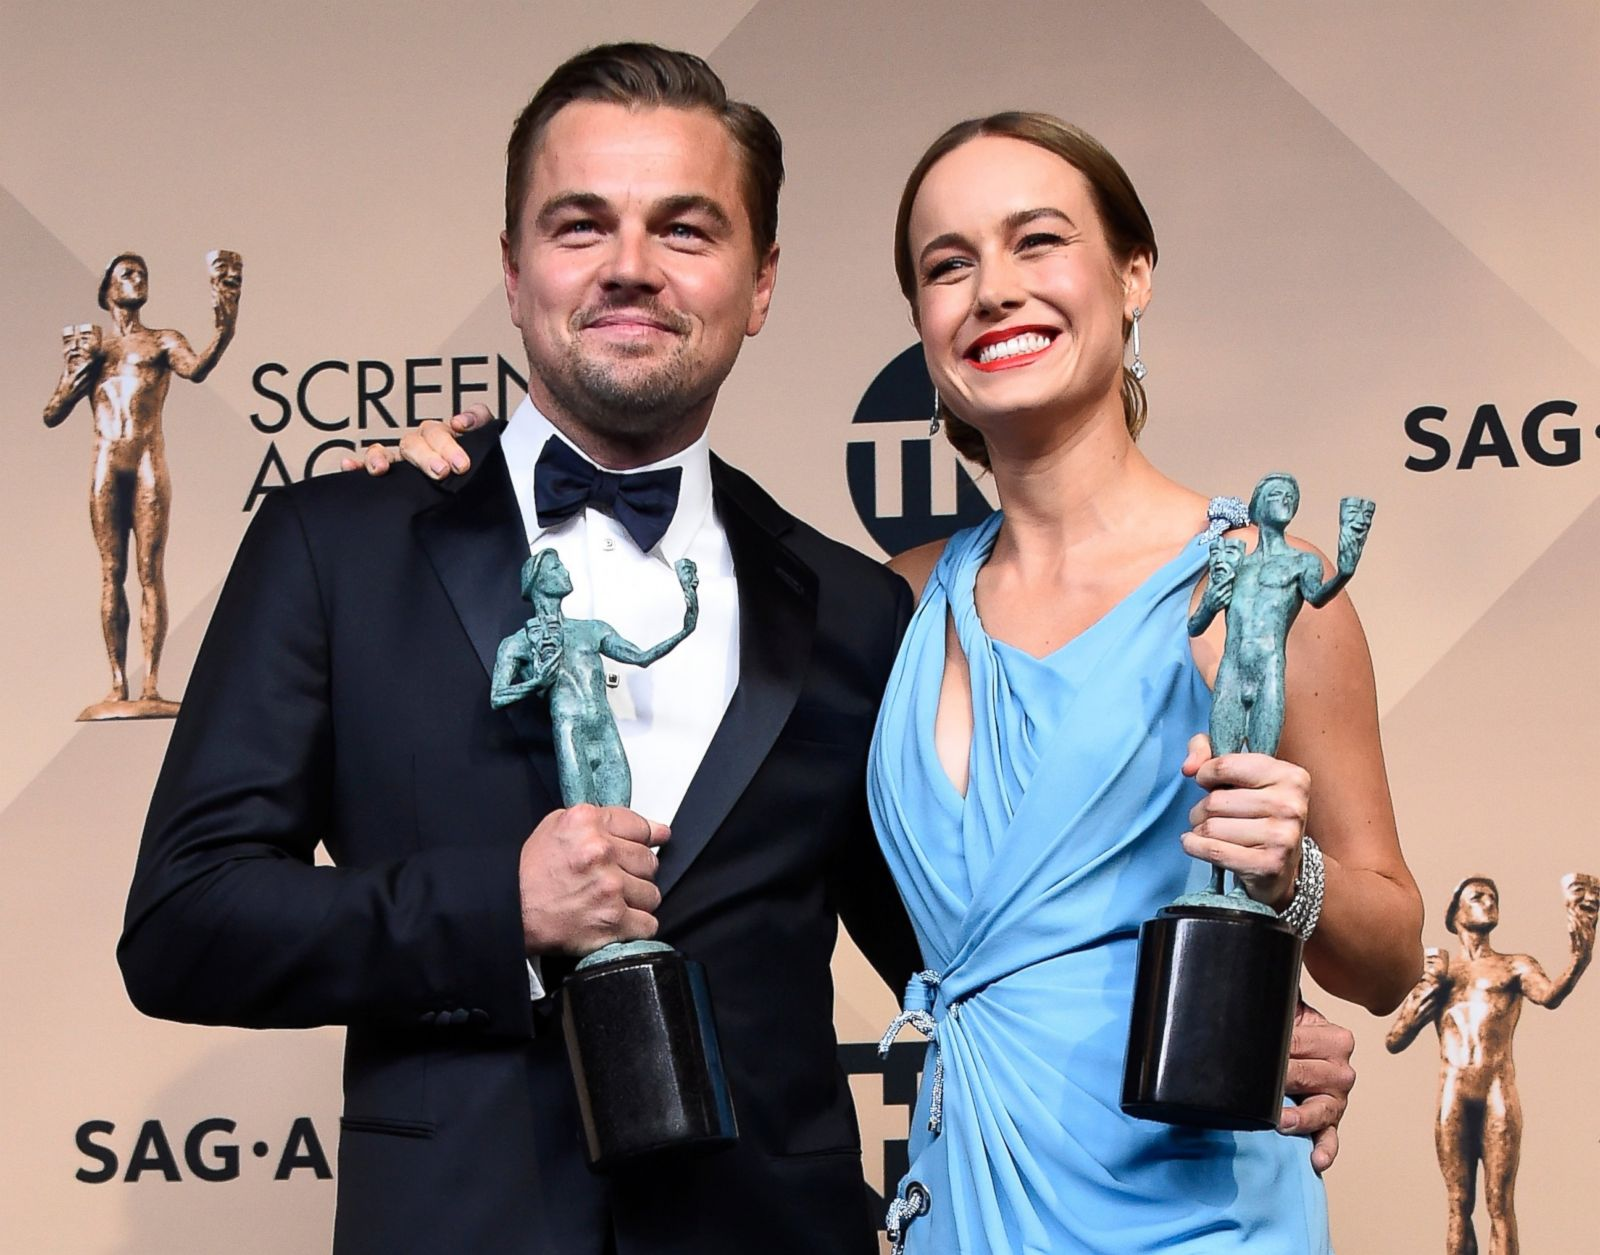 Leonardo Dicaprio And Brie Larson Win Big At The Sag Awards Picture